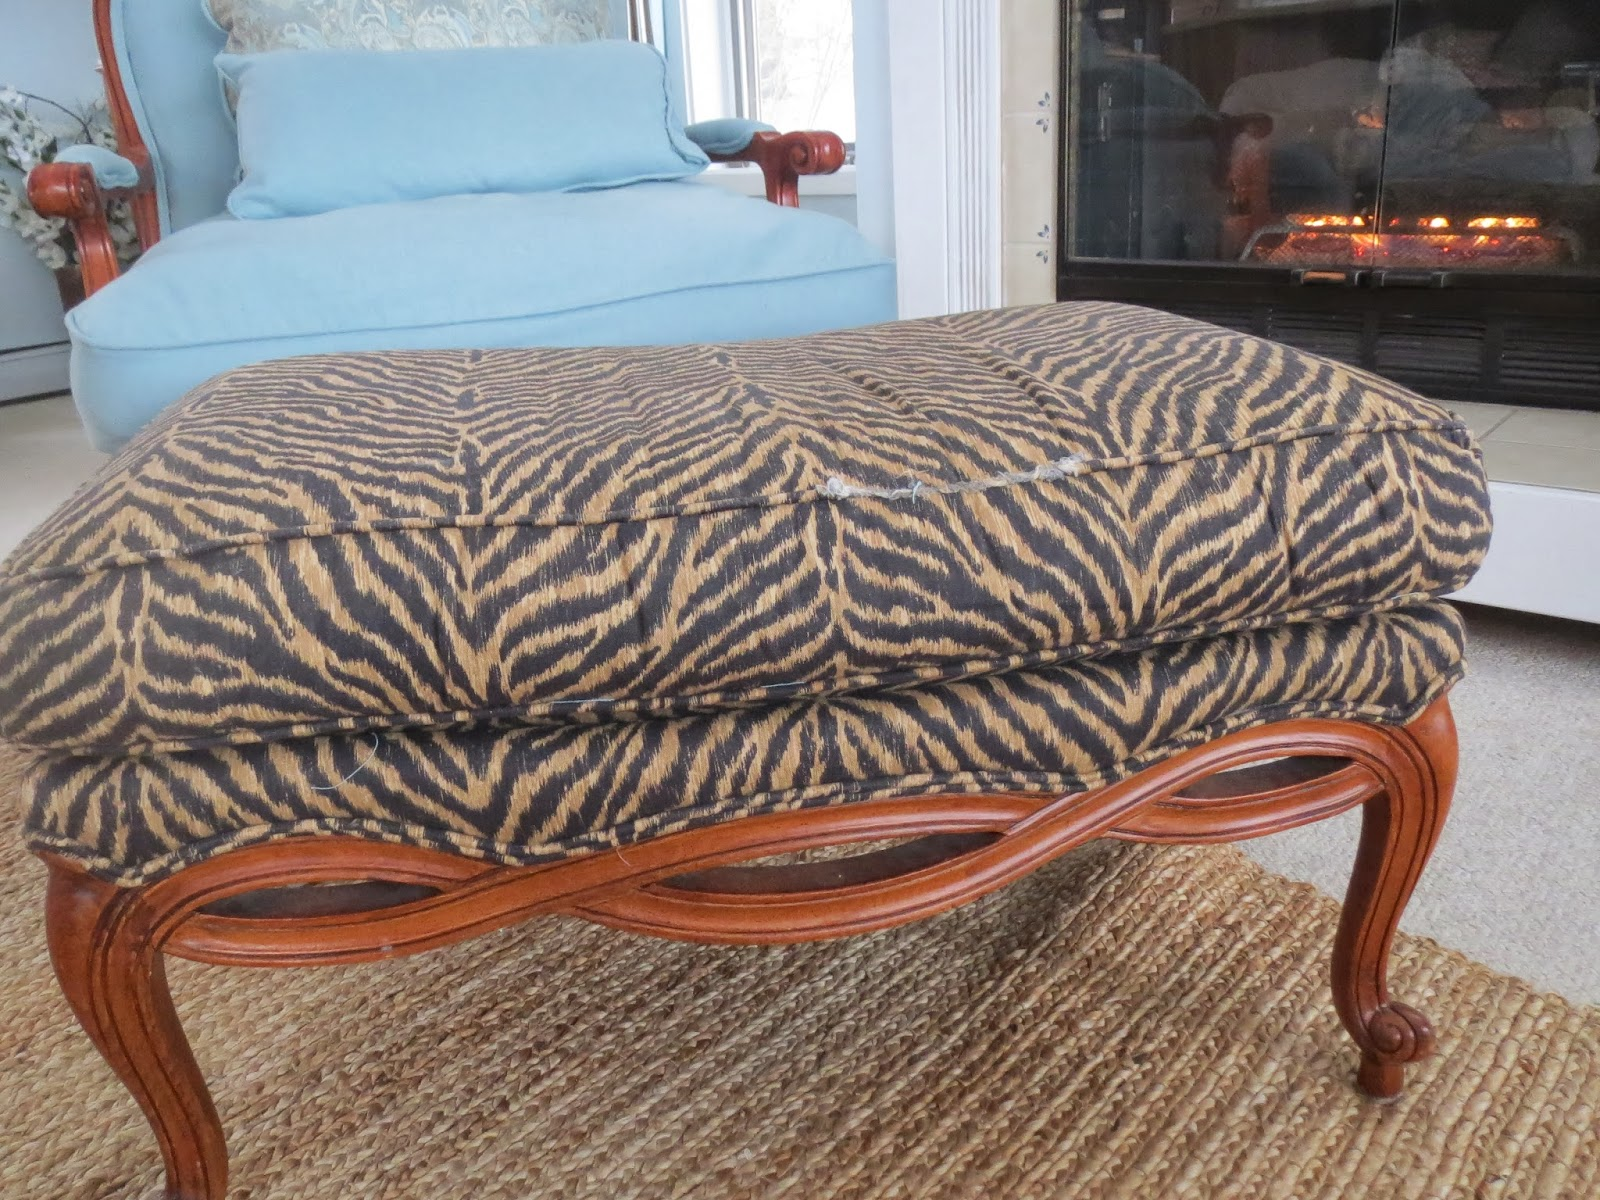 Bergere chair and ottoman - I Had Never Reupholstered Anything Before But I Loved The Beautiful Wood On This Chair And Ottoman And Felt I Had Nothing To Lose